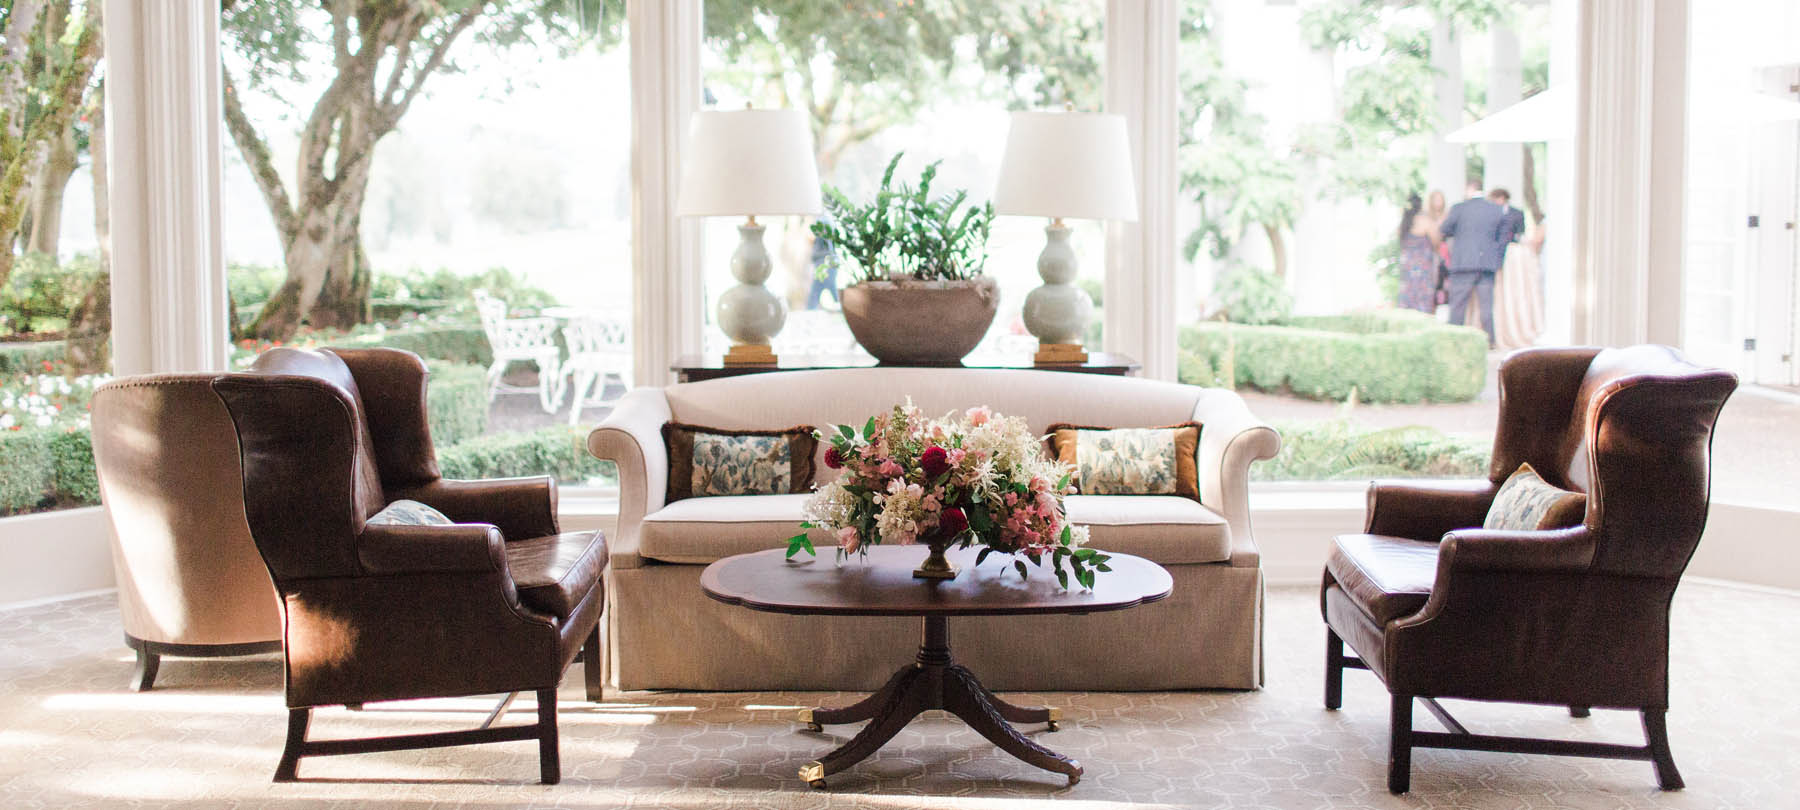 floral design at the Waverley Country Club wedding lounge area